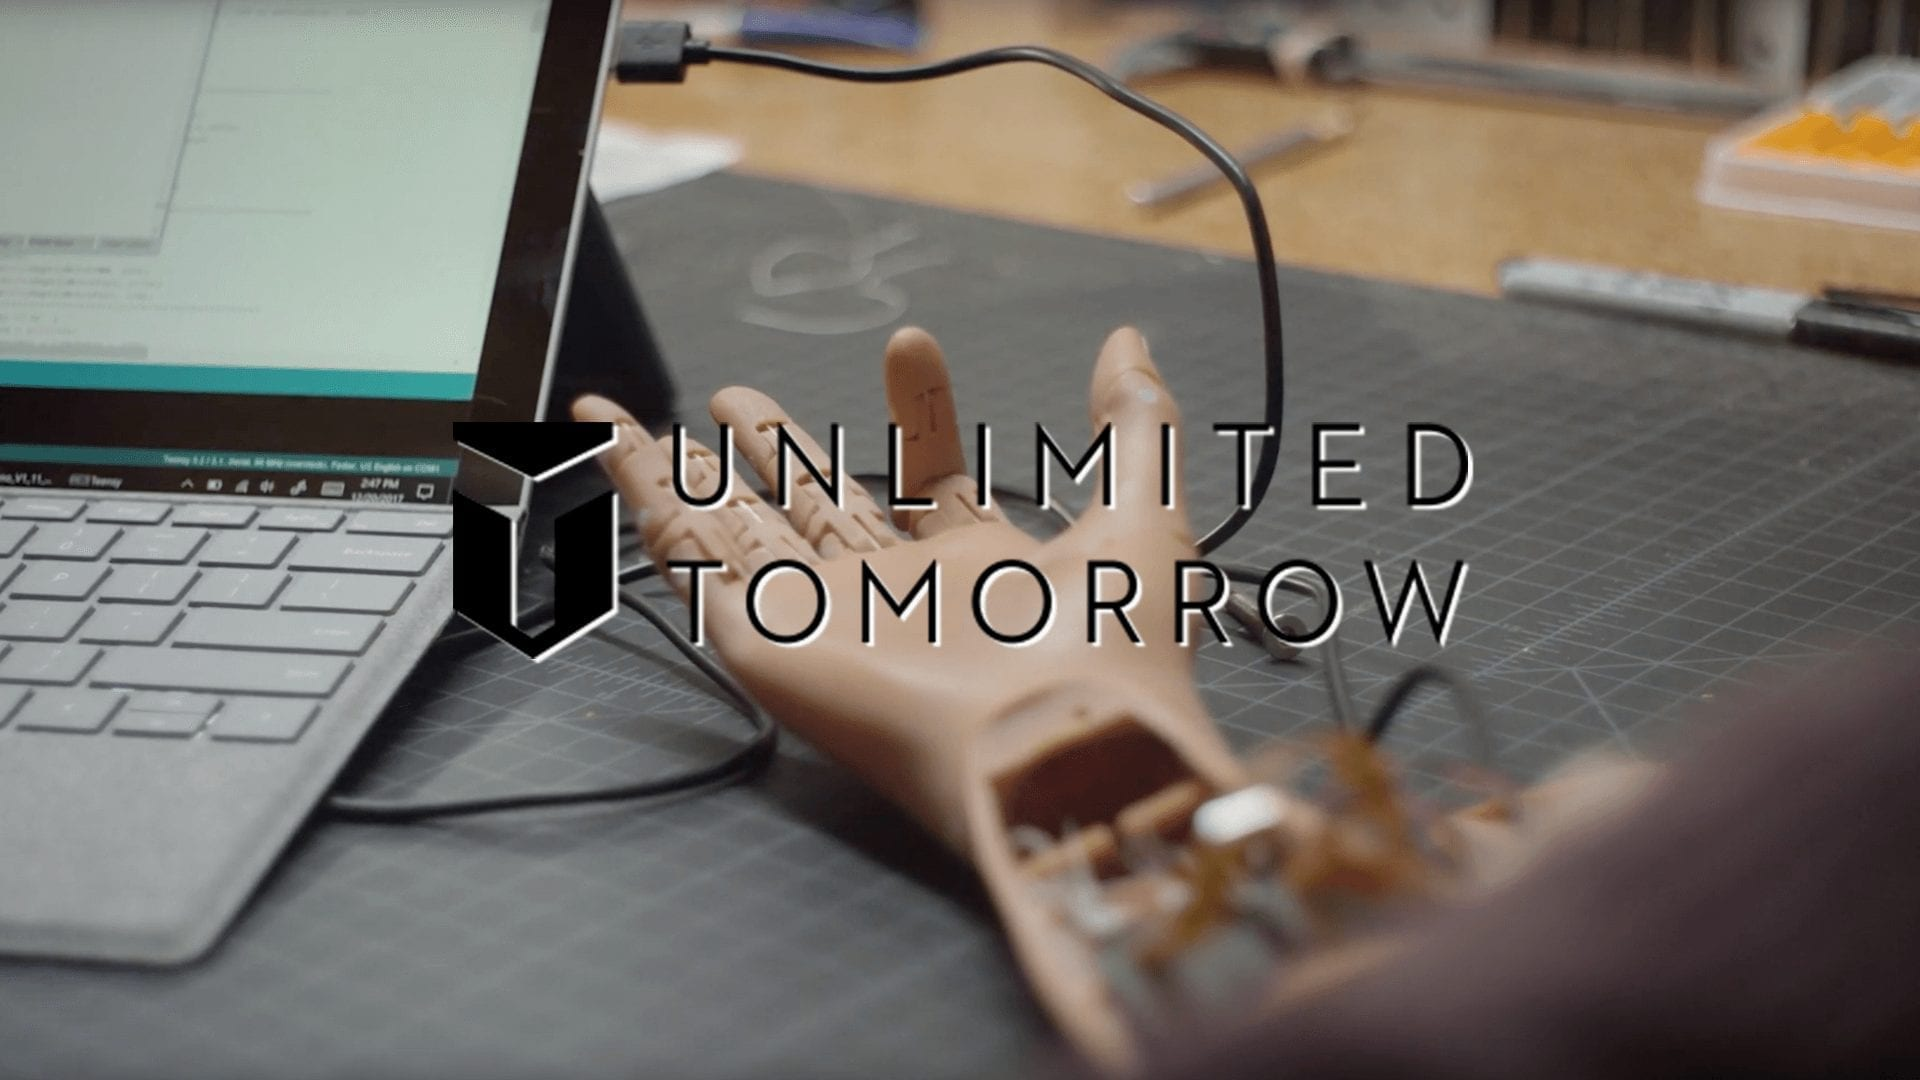 Project Thumbnail Unlimited Tomorrow